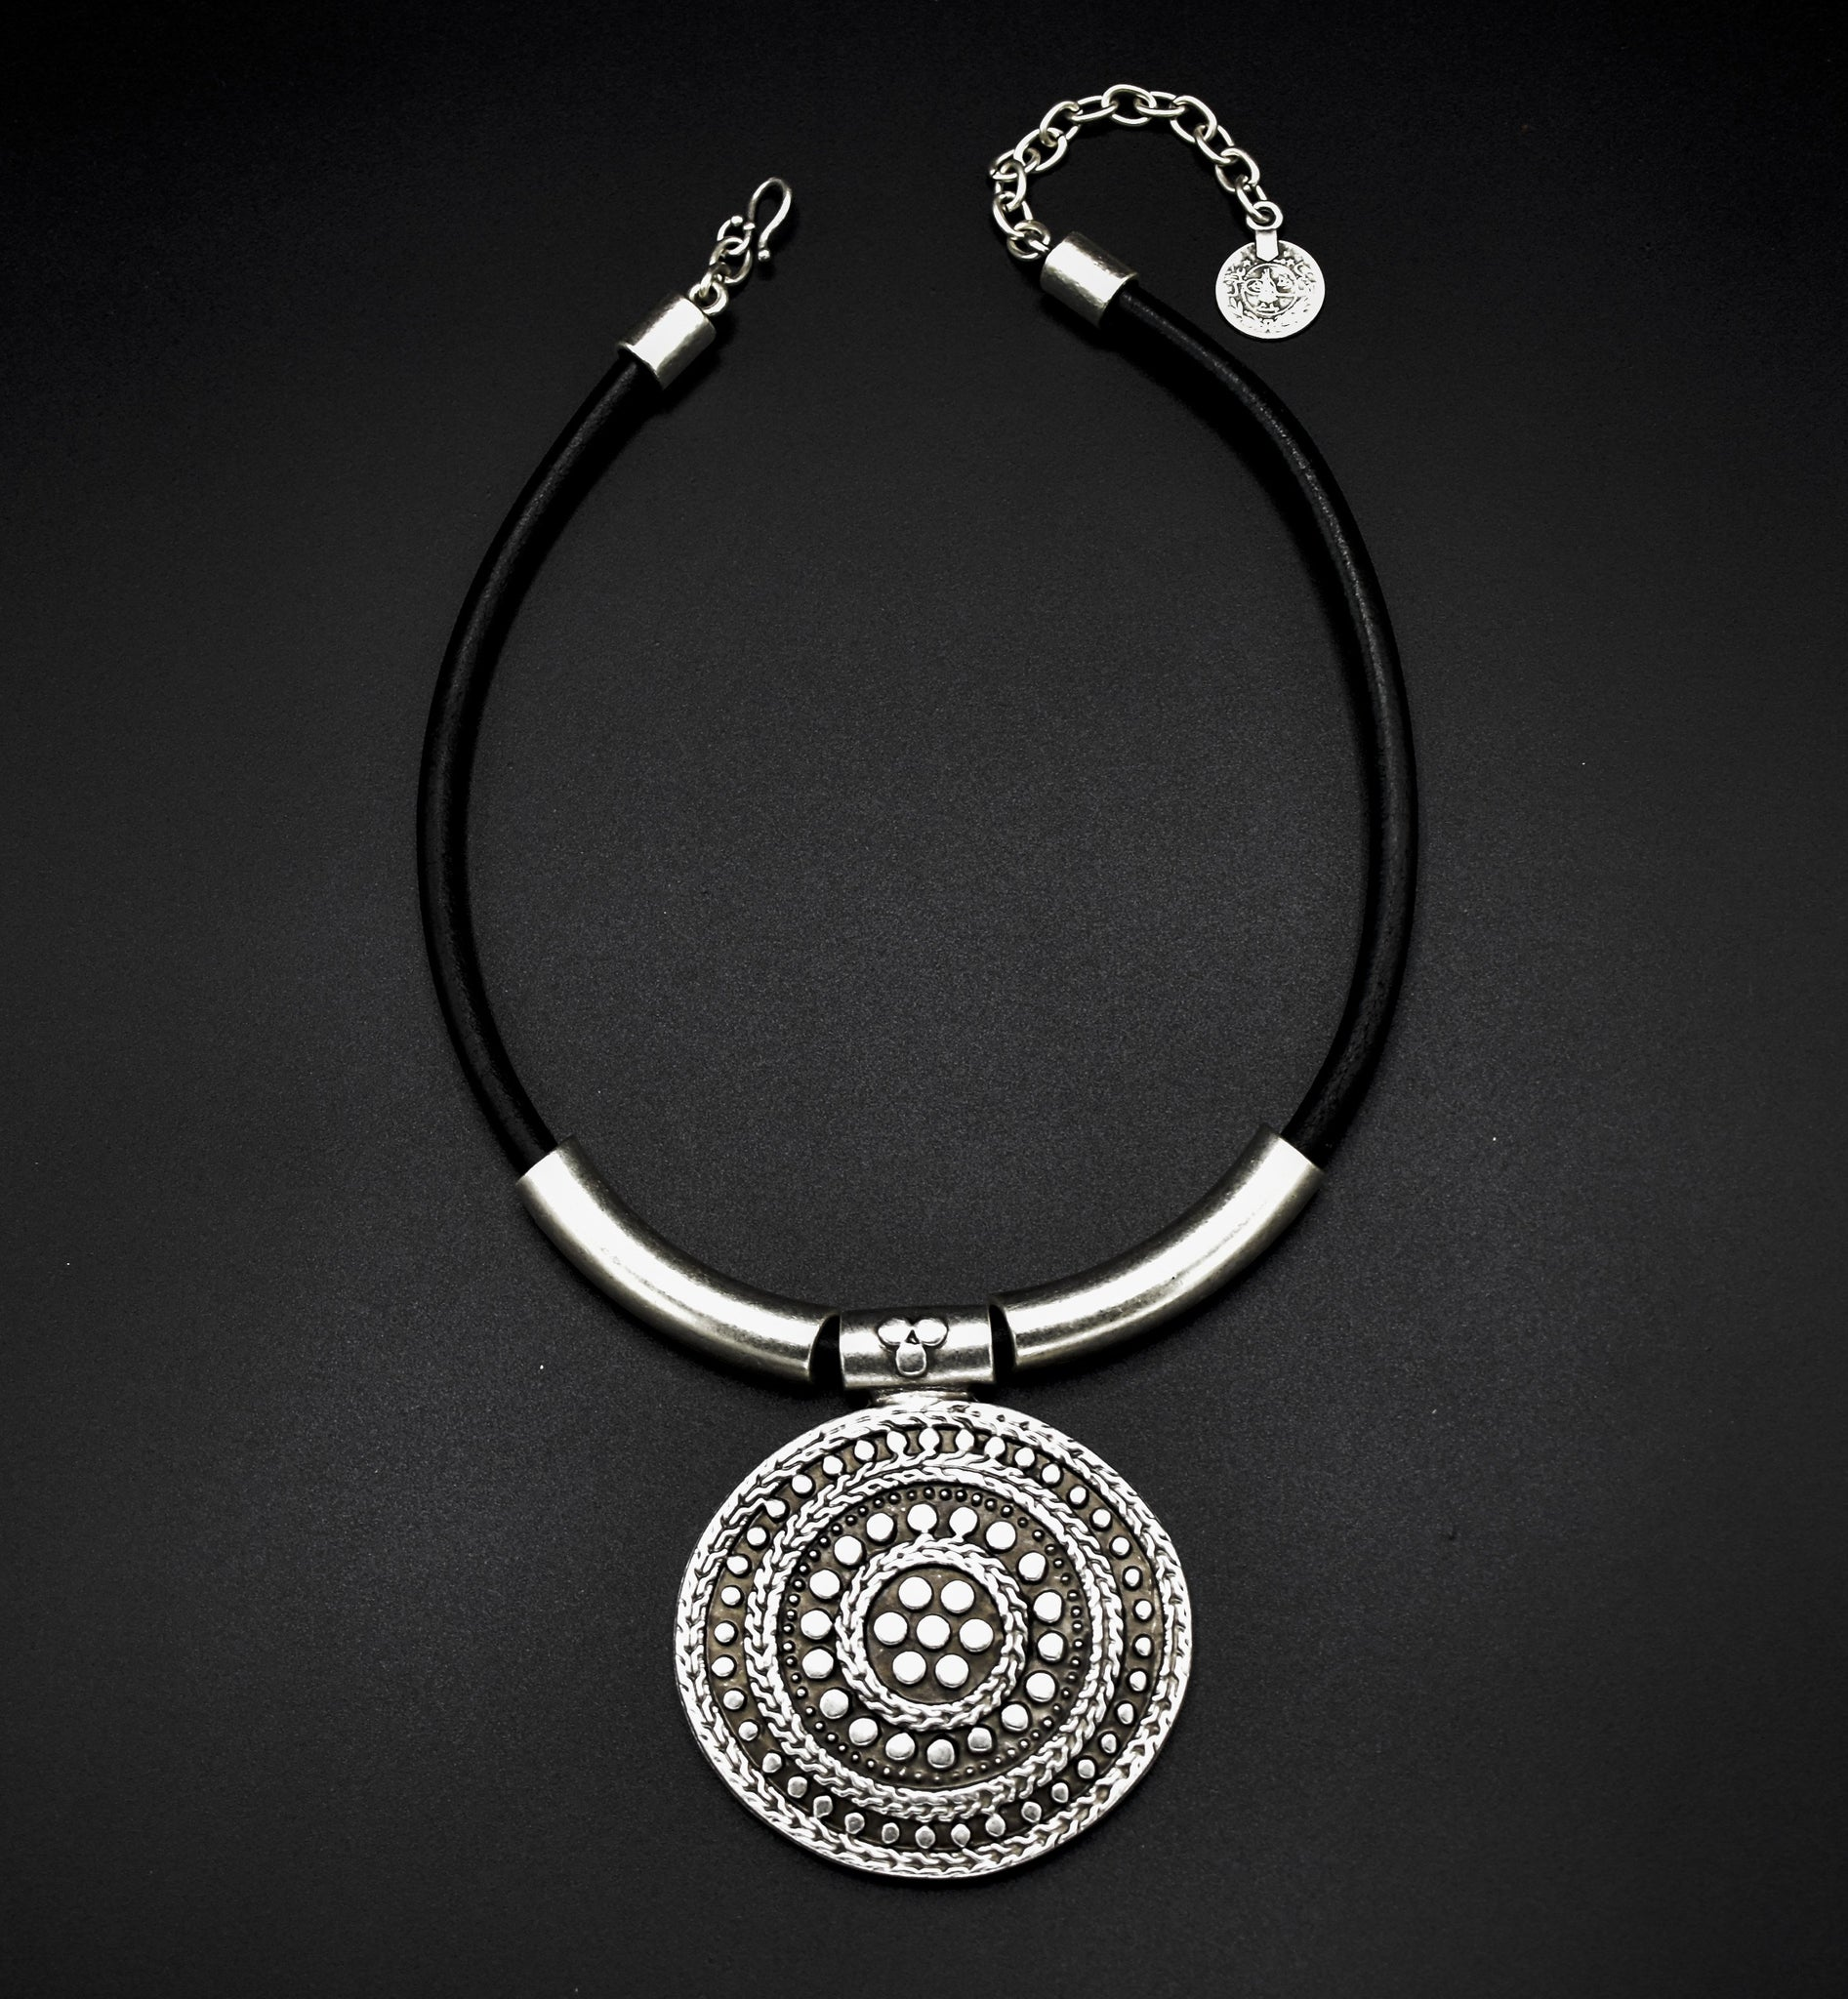 Pewter Necklace - SKU# 1664